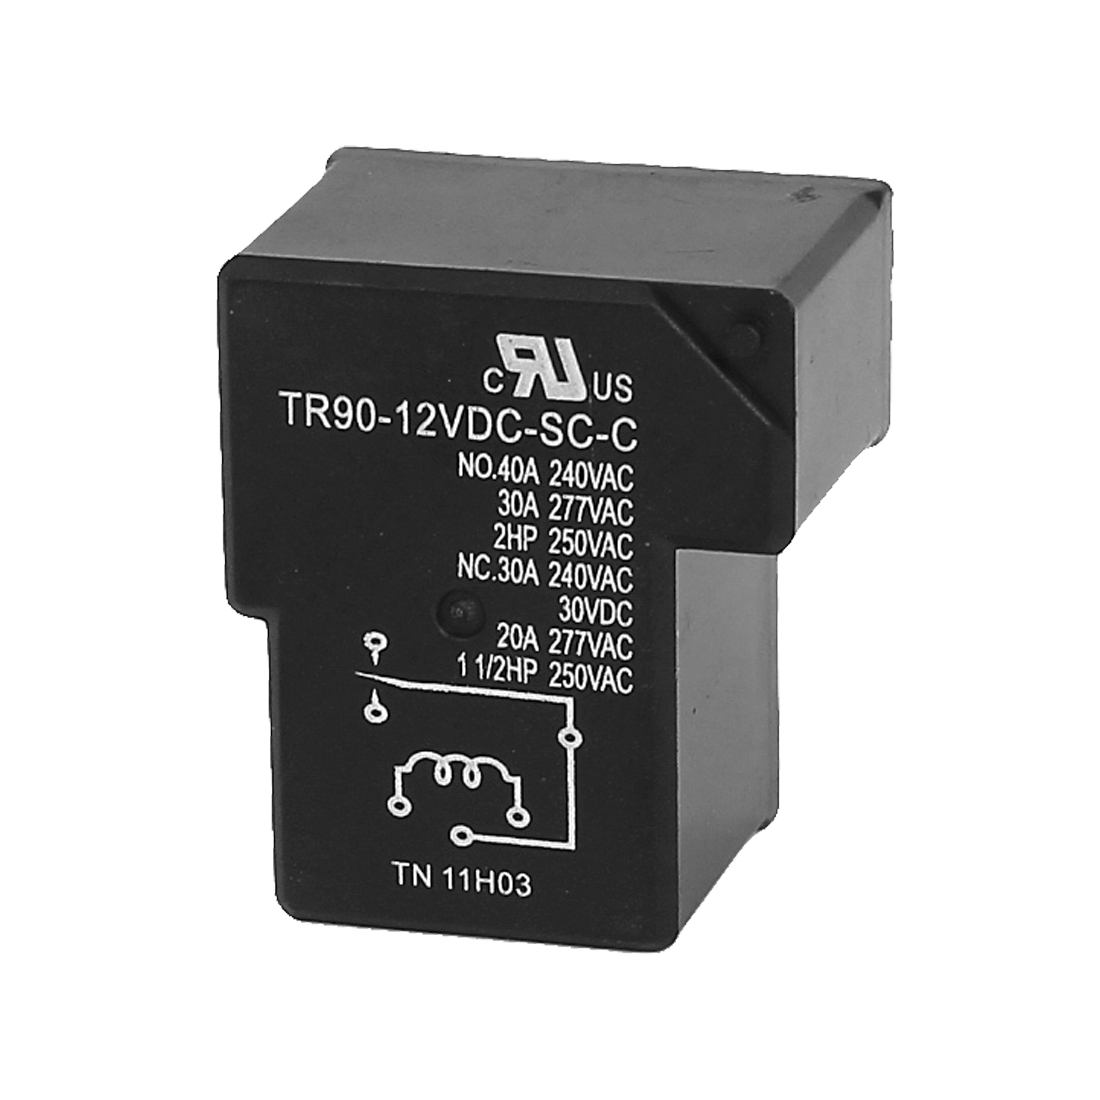 DC 12V Coil 6 Pins Terminal 1NO 1NC PCB Mount Electromagnetic Power Relays TR90-12VDC-SC-C